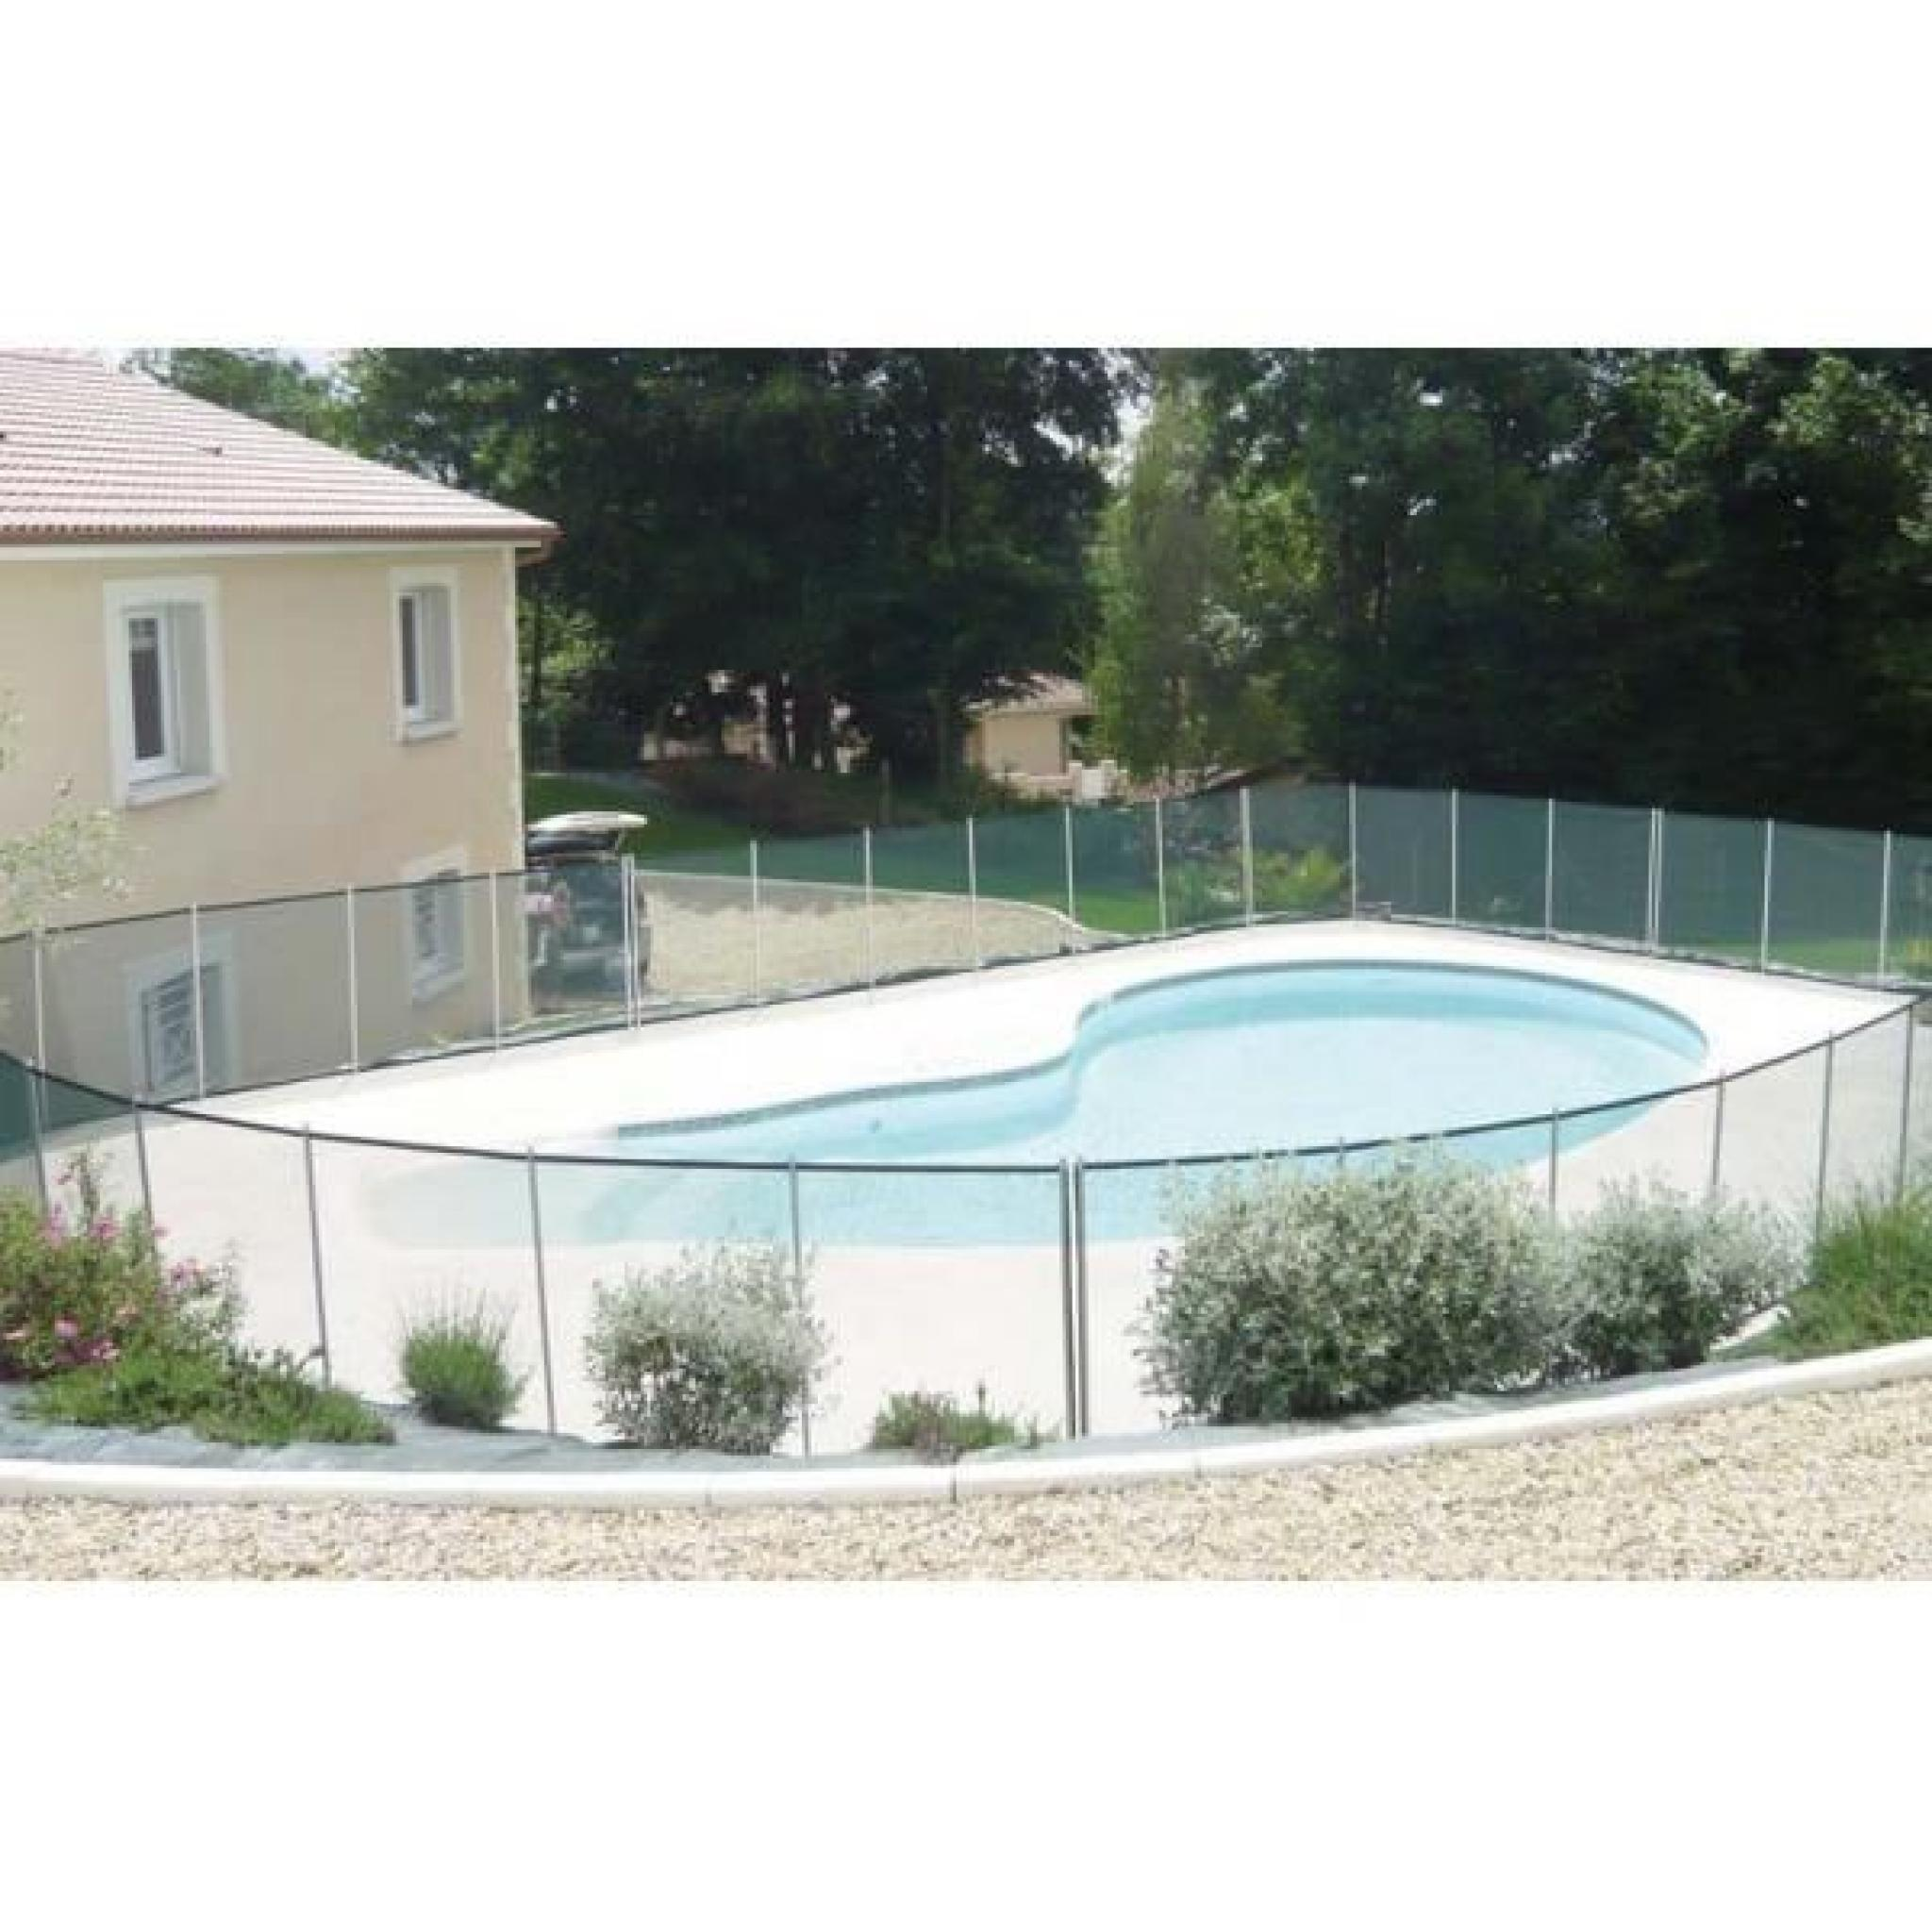 Barriere de piscine beethoven noire piquets noirs 8 for Barriere de piscine demontable